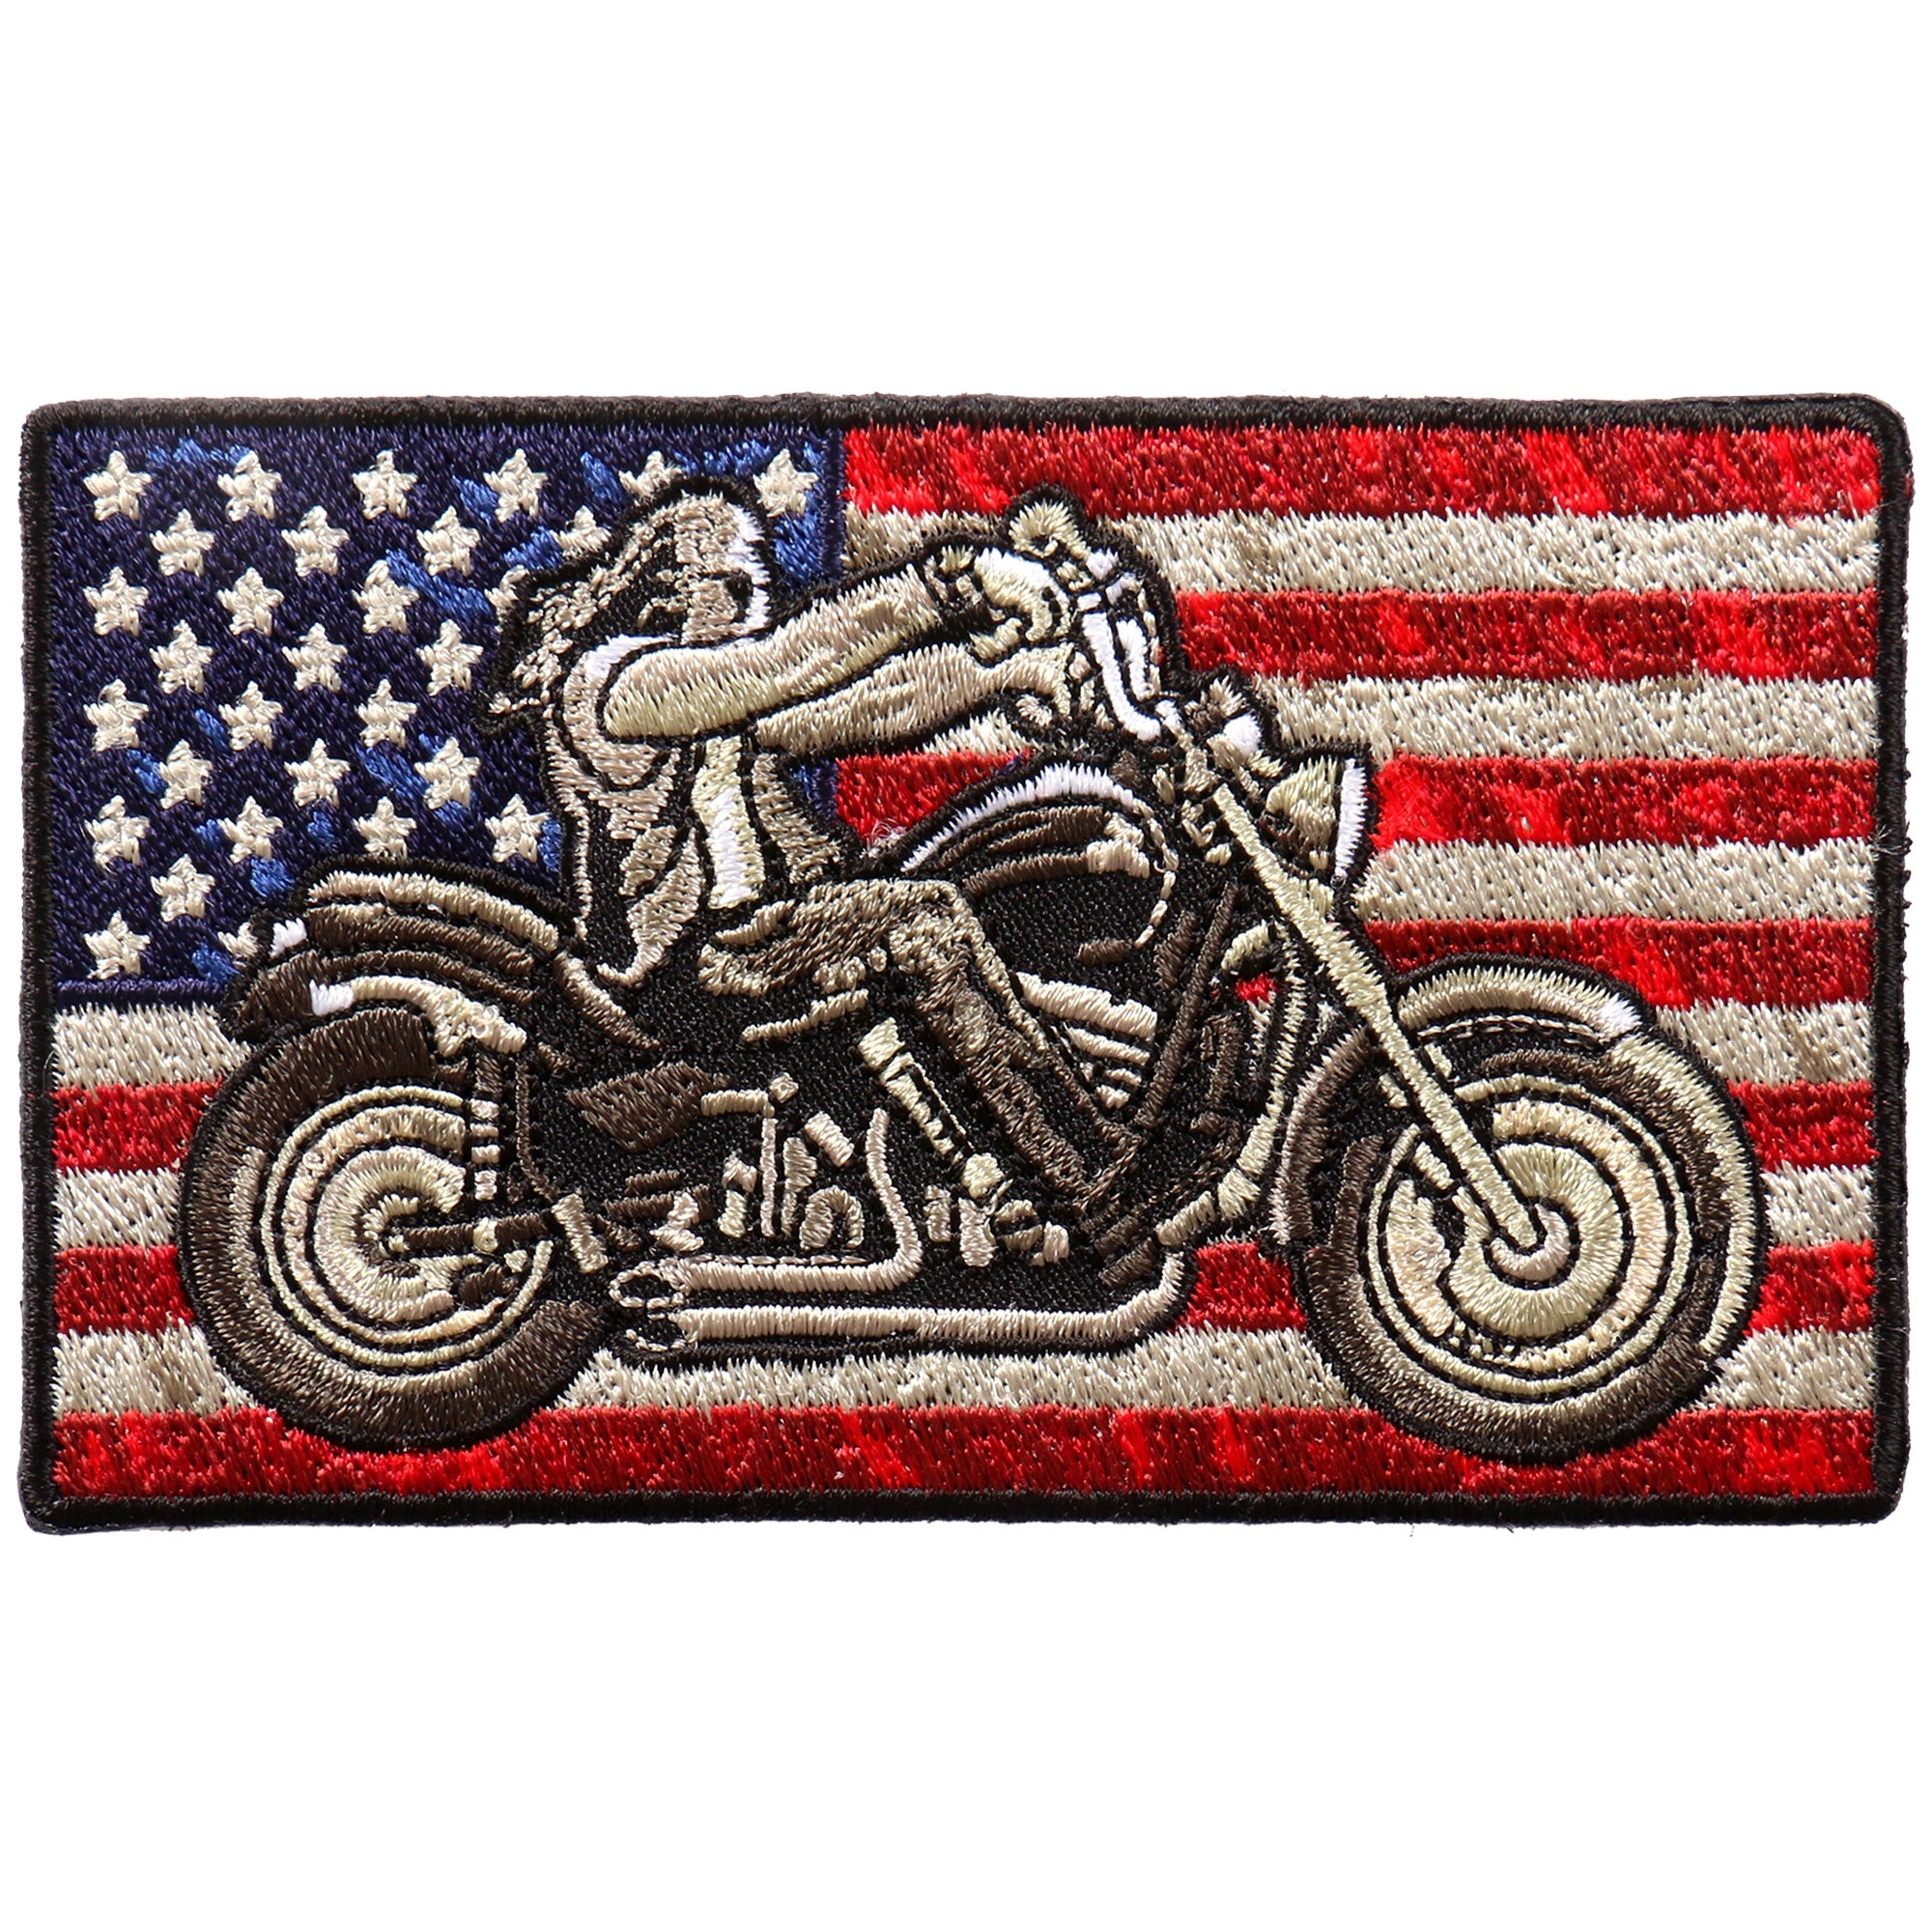 "Hot Leathers Biker Flag 4""x2"" Patch"